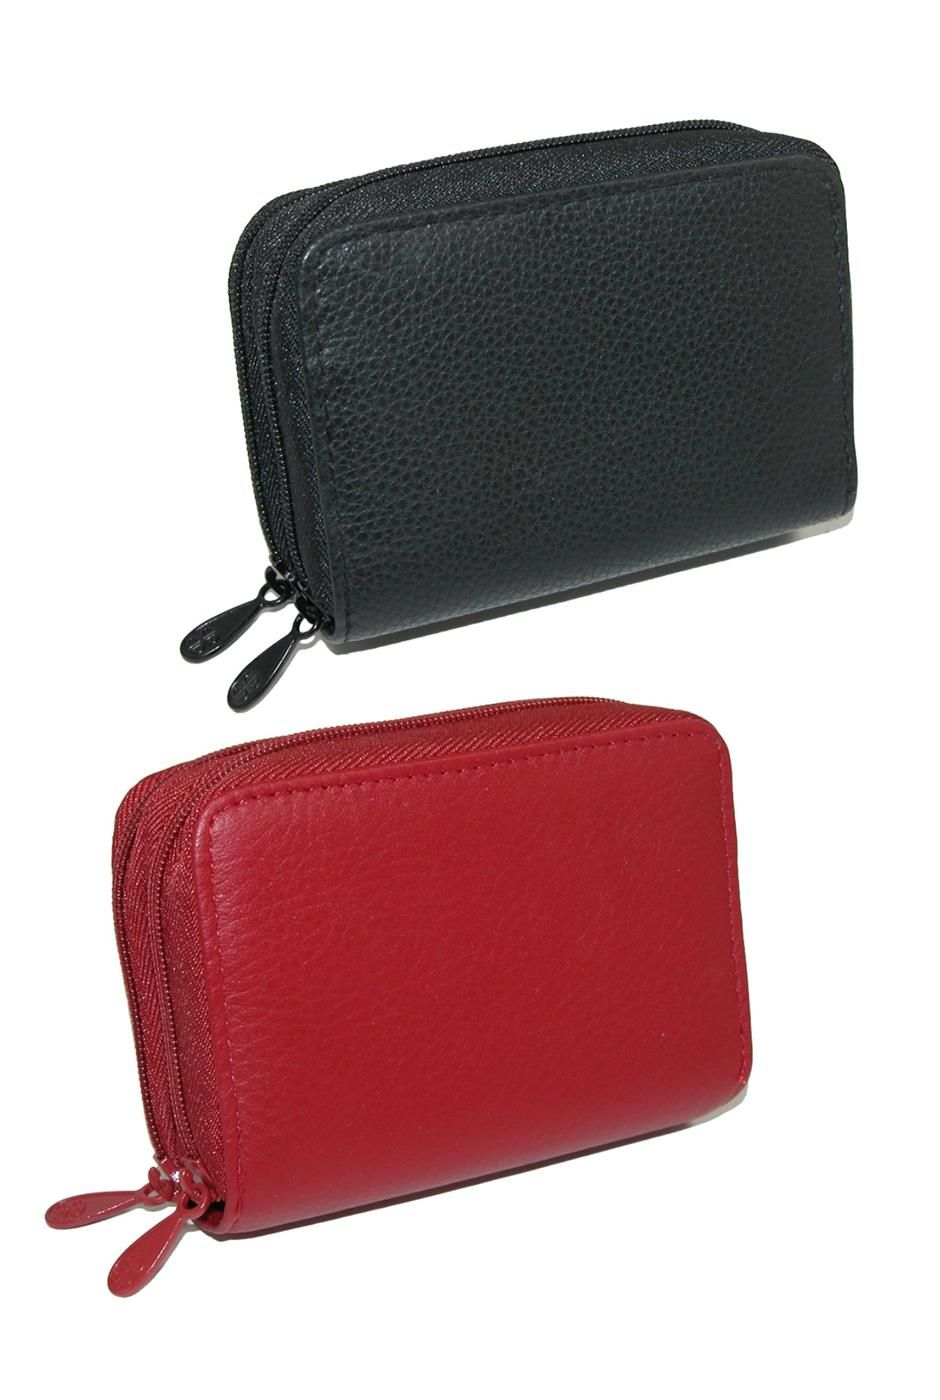 Buxton womens leather mini accordion wizard wallet pack of 2 want to switch out your wallet color or give one away as a gift the multiple compartments have everything you need to keep your cash cards business colourmoves